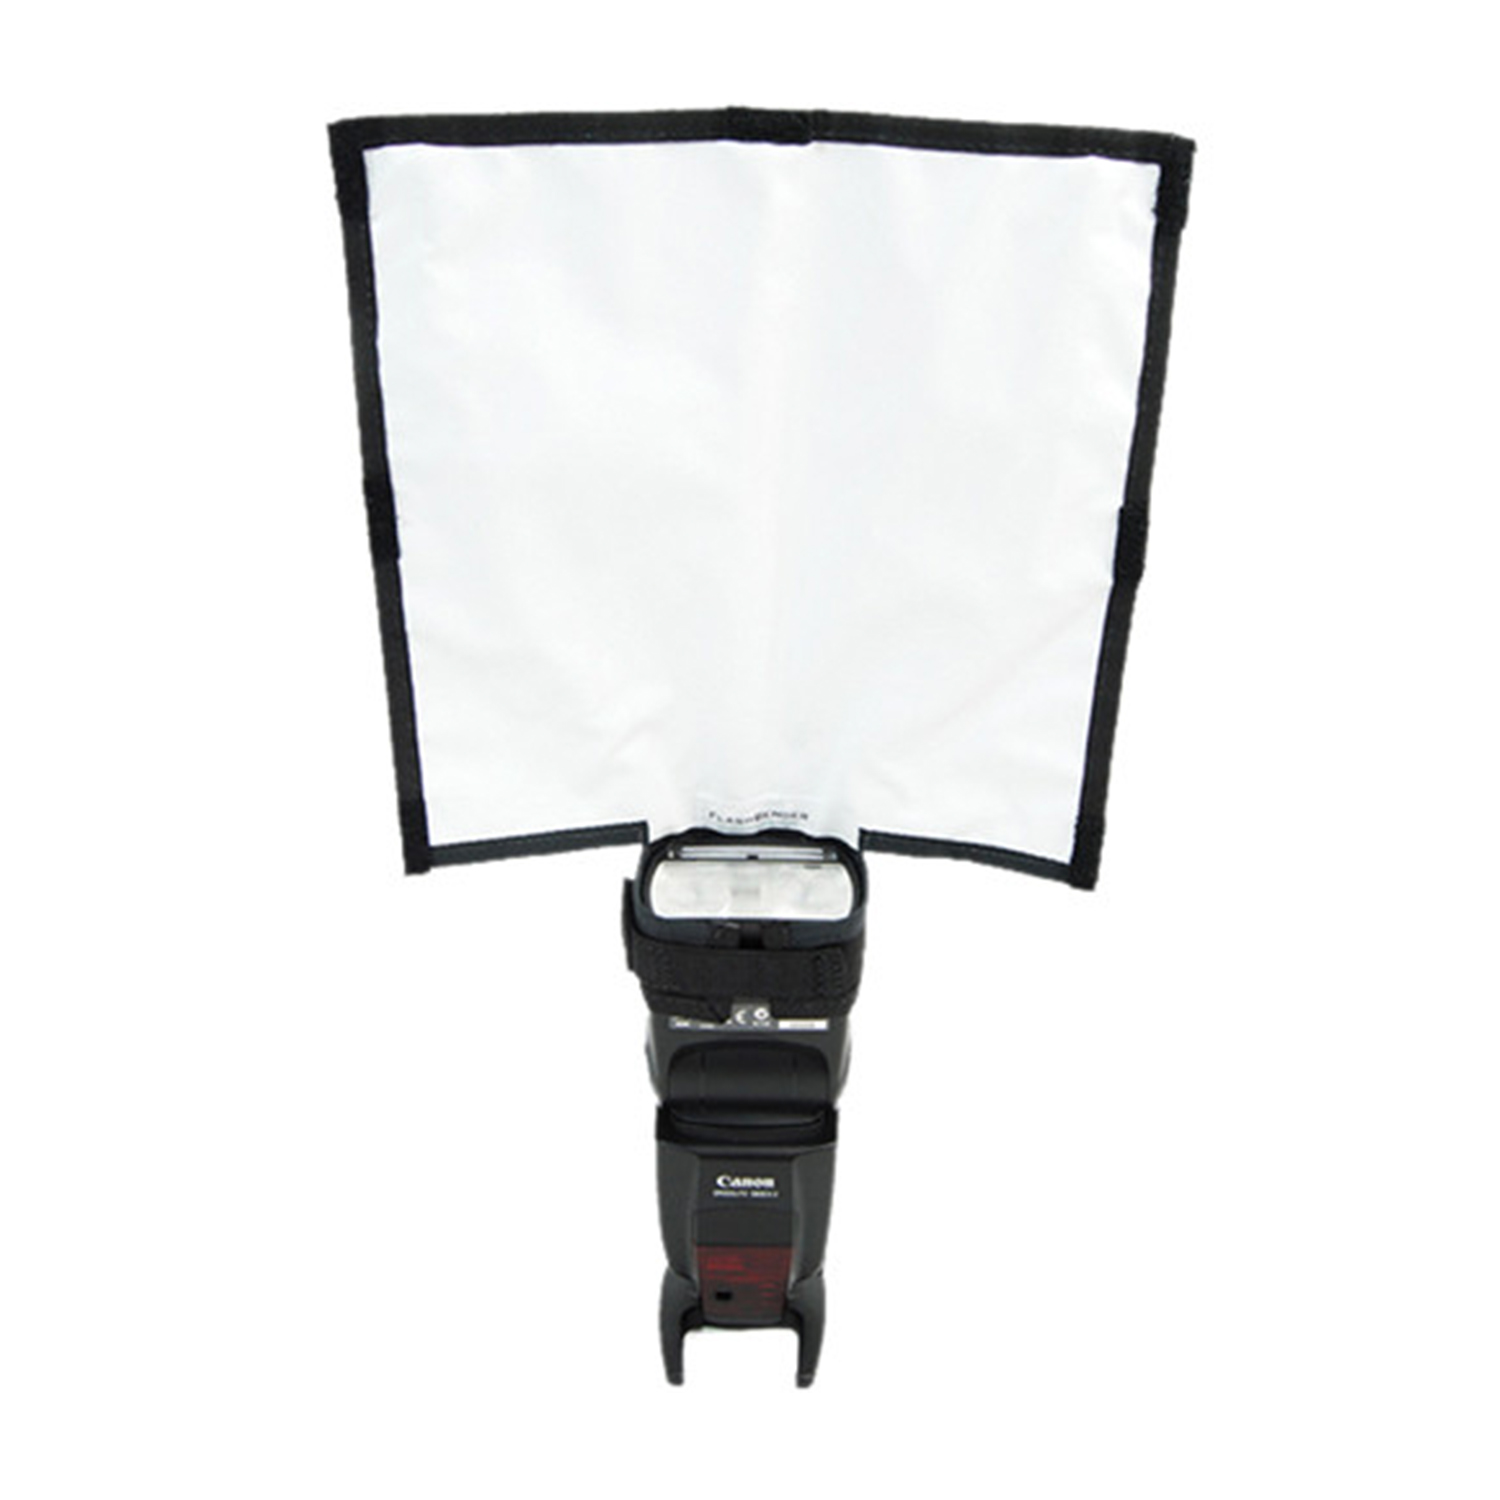 Rogue FlashBender 2 Large Reflector, Bounce Flash, Snoot, Gobo (Black/White)